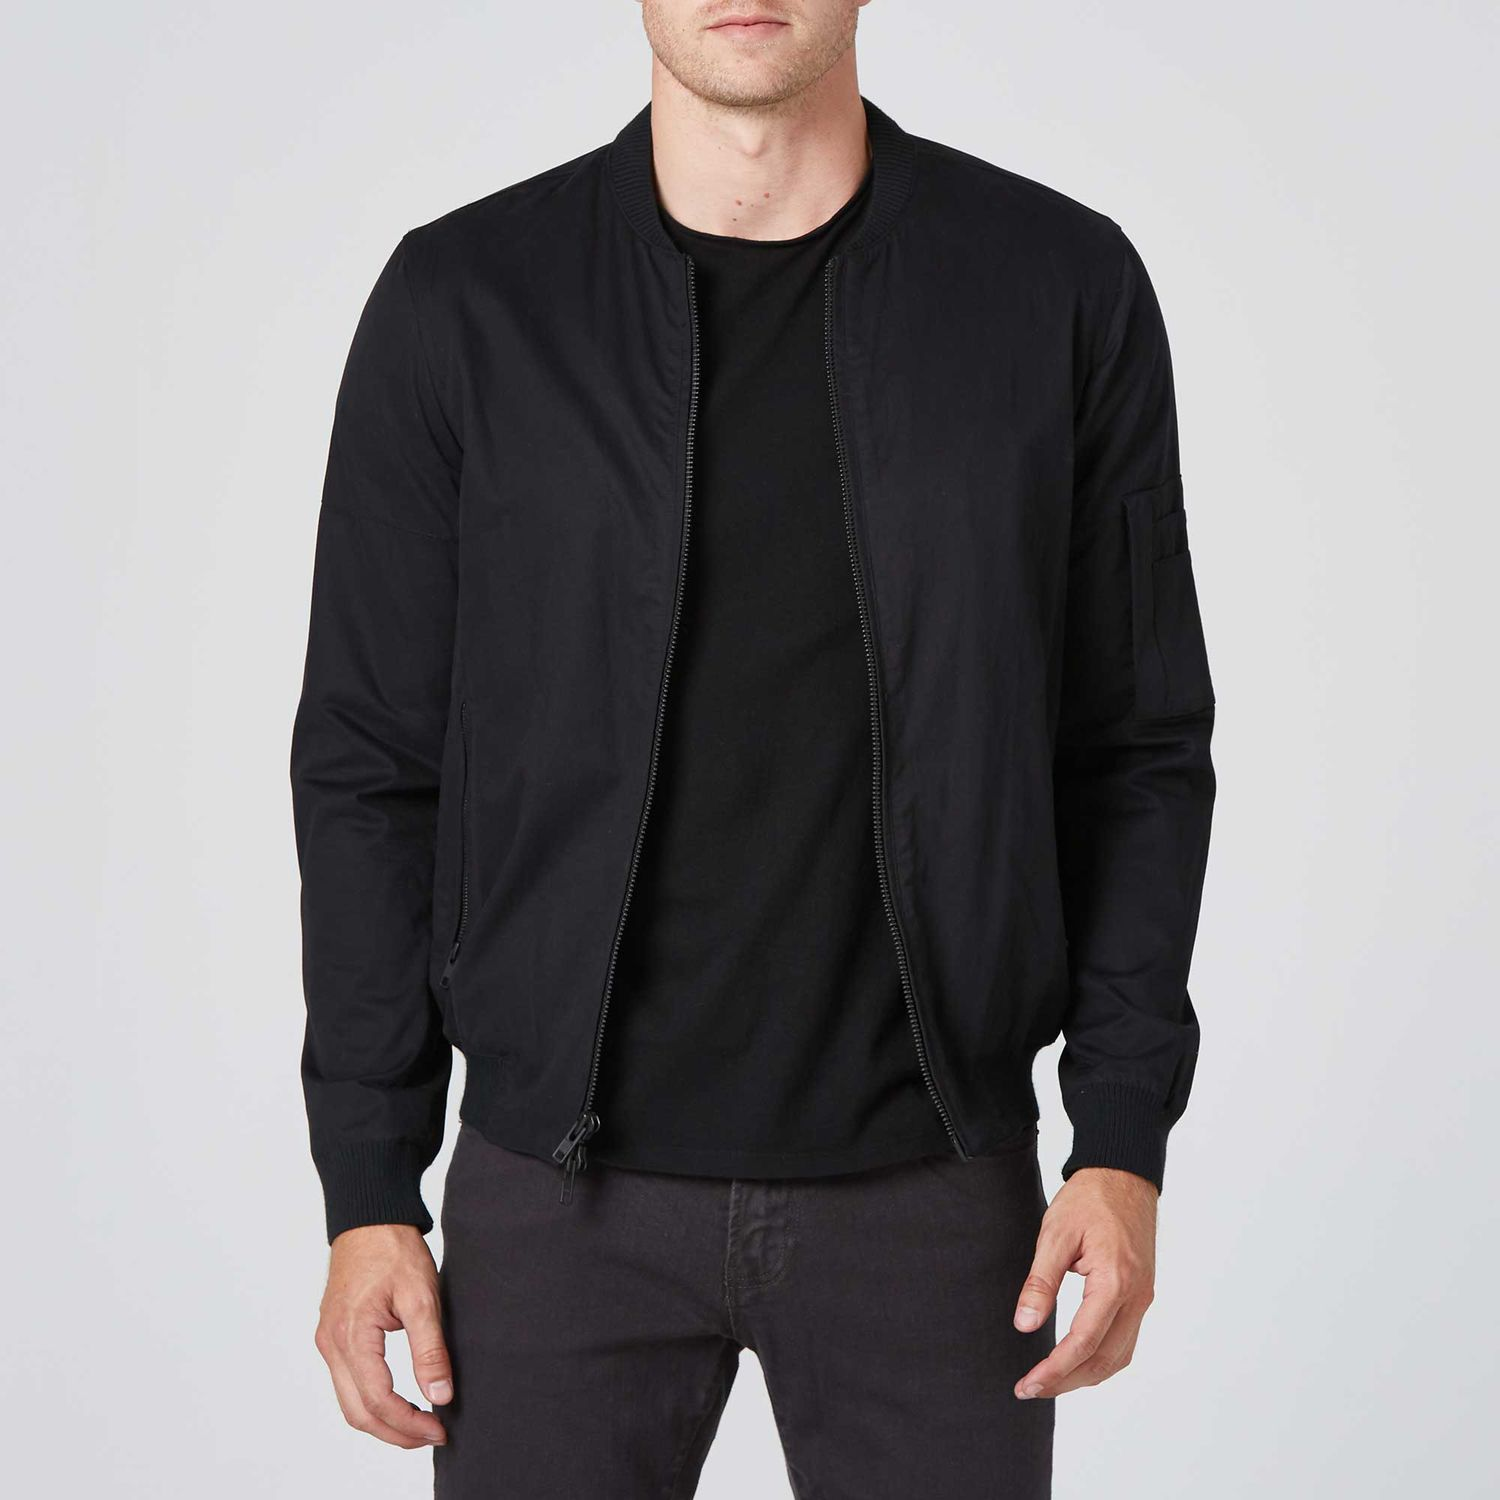 Bomber jacket for men cool fashion trend for everyday